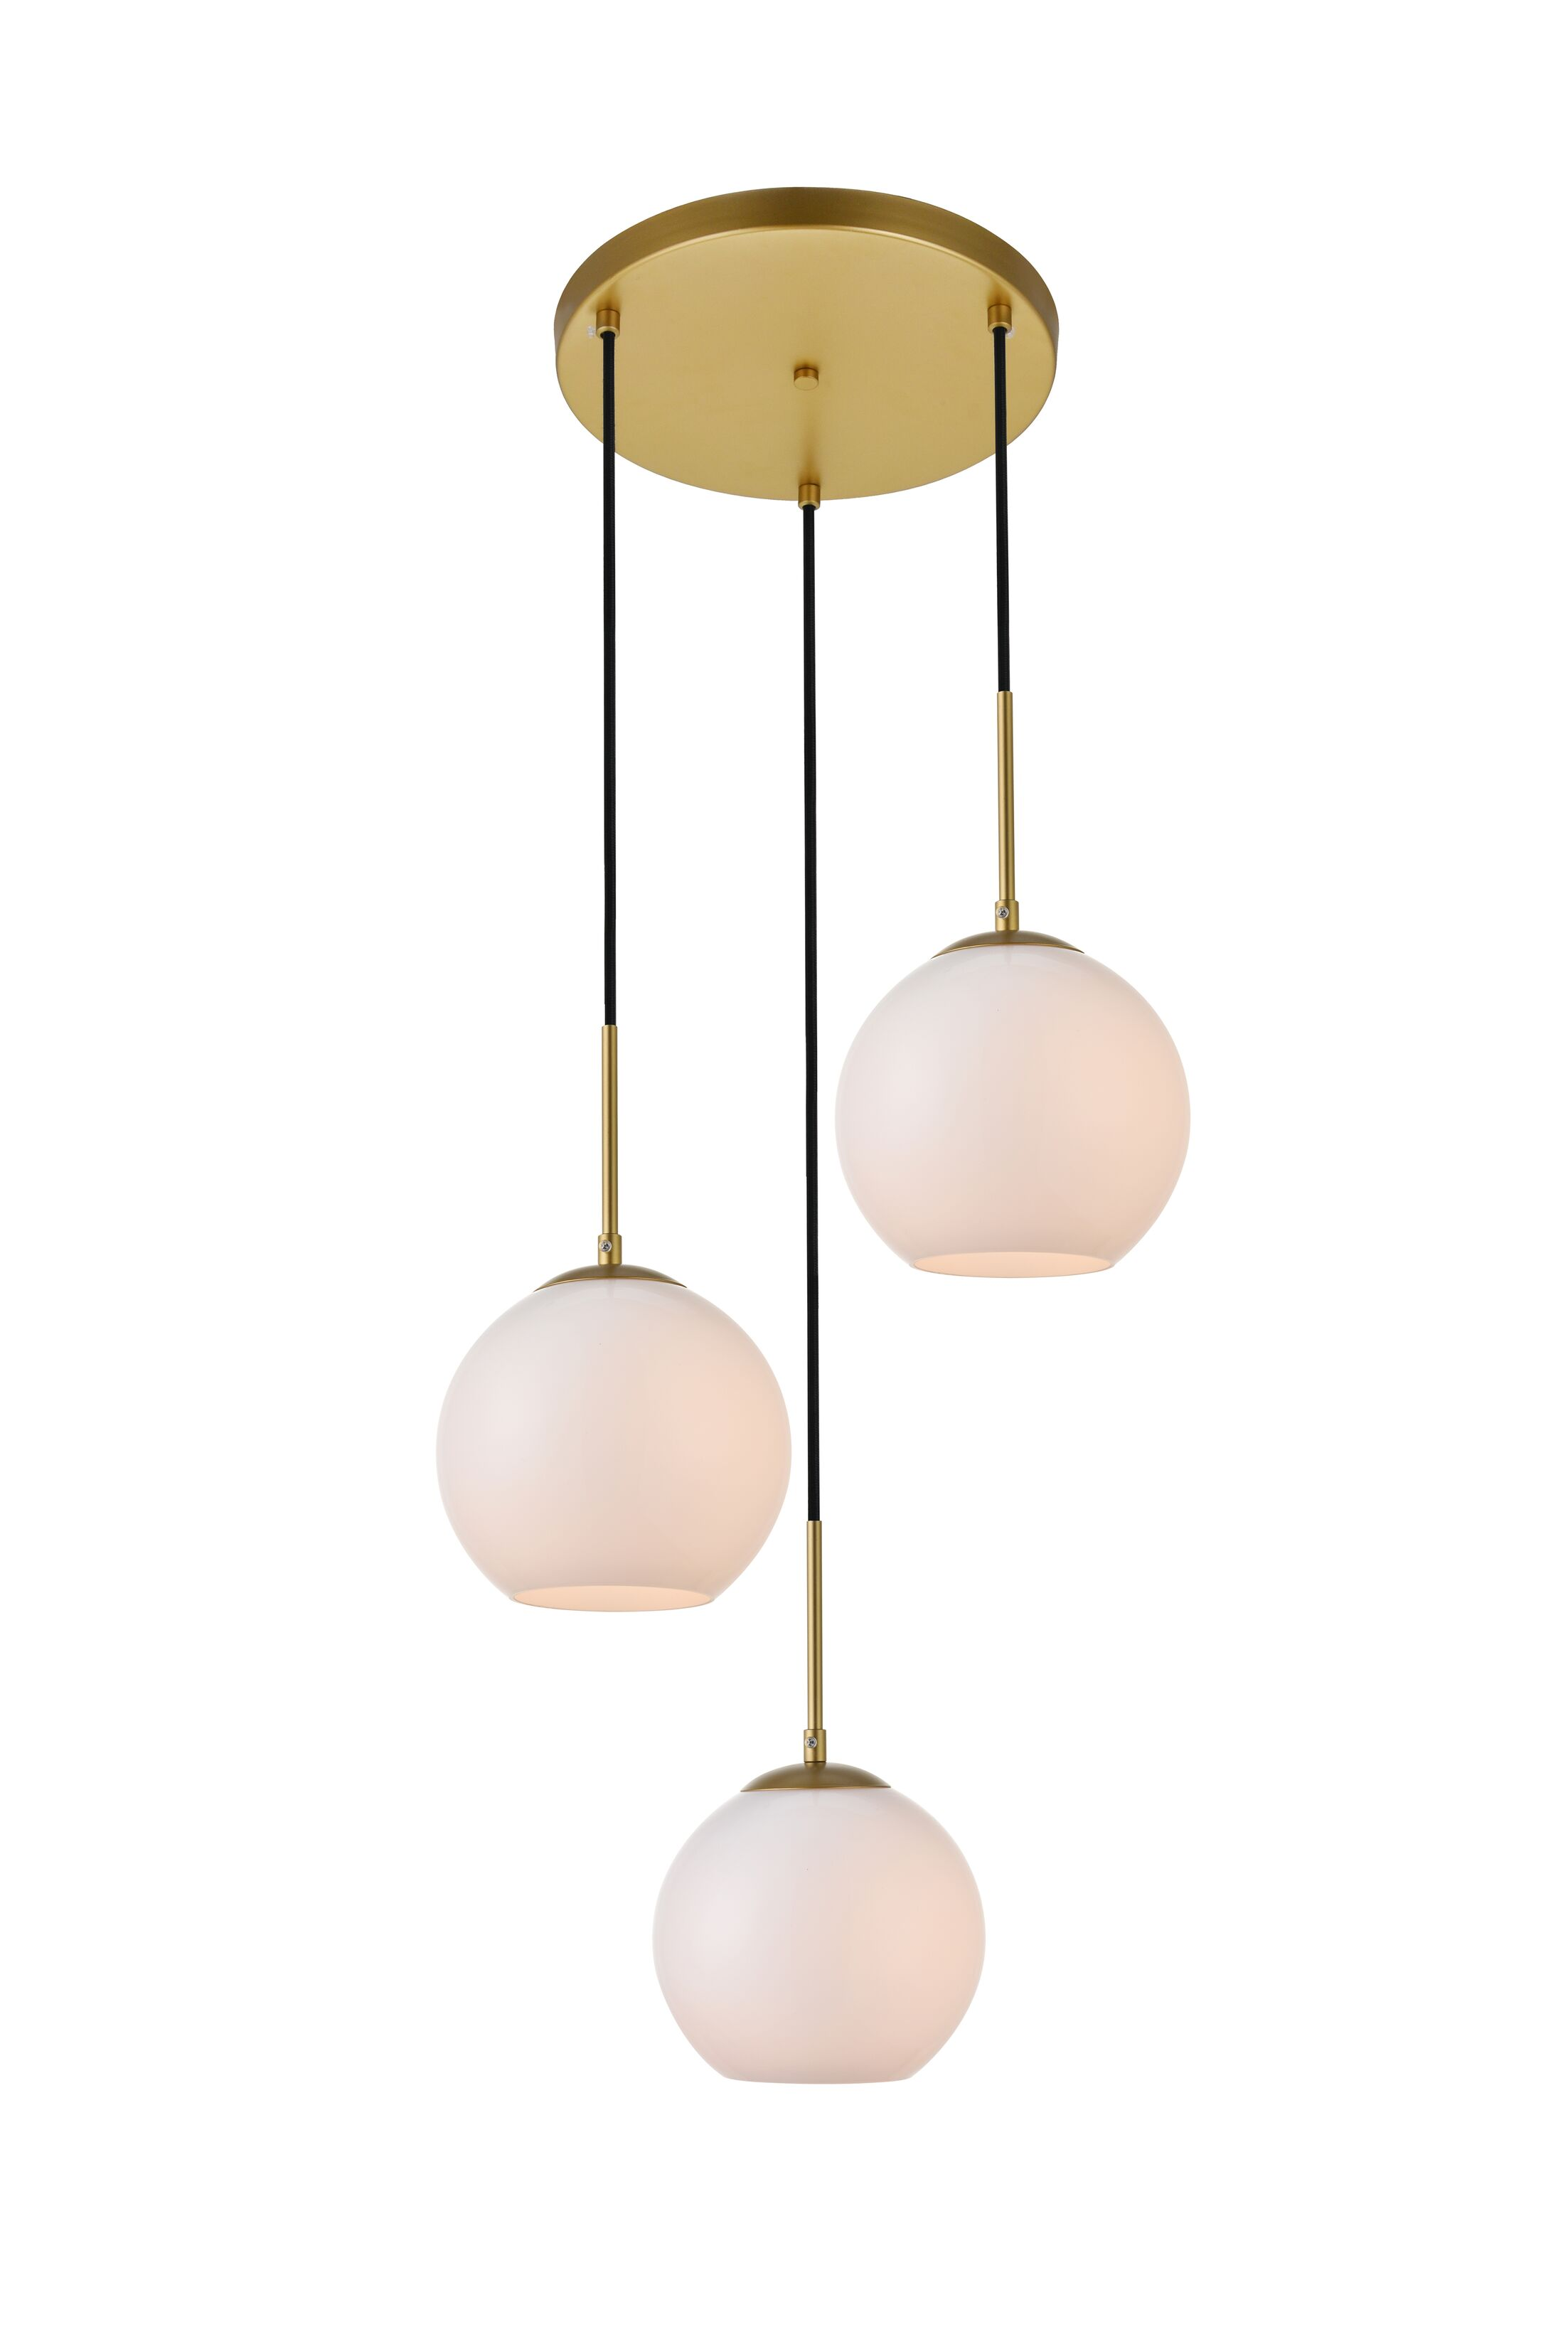 Eller 3-Light Cluster Pendant Finish: Brass, Shade Color/Pattern: Frosted White, Size: 11.8